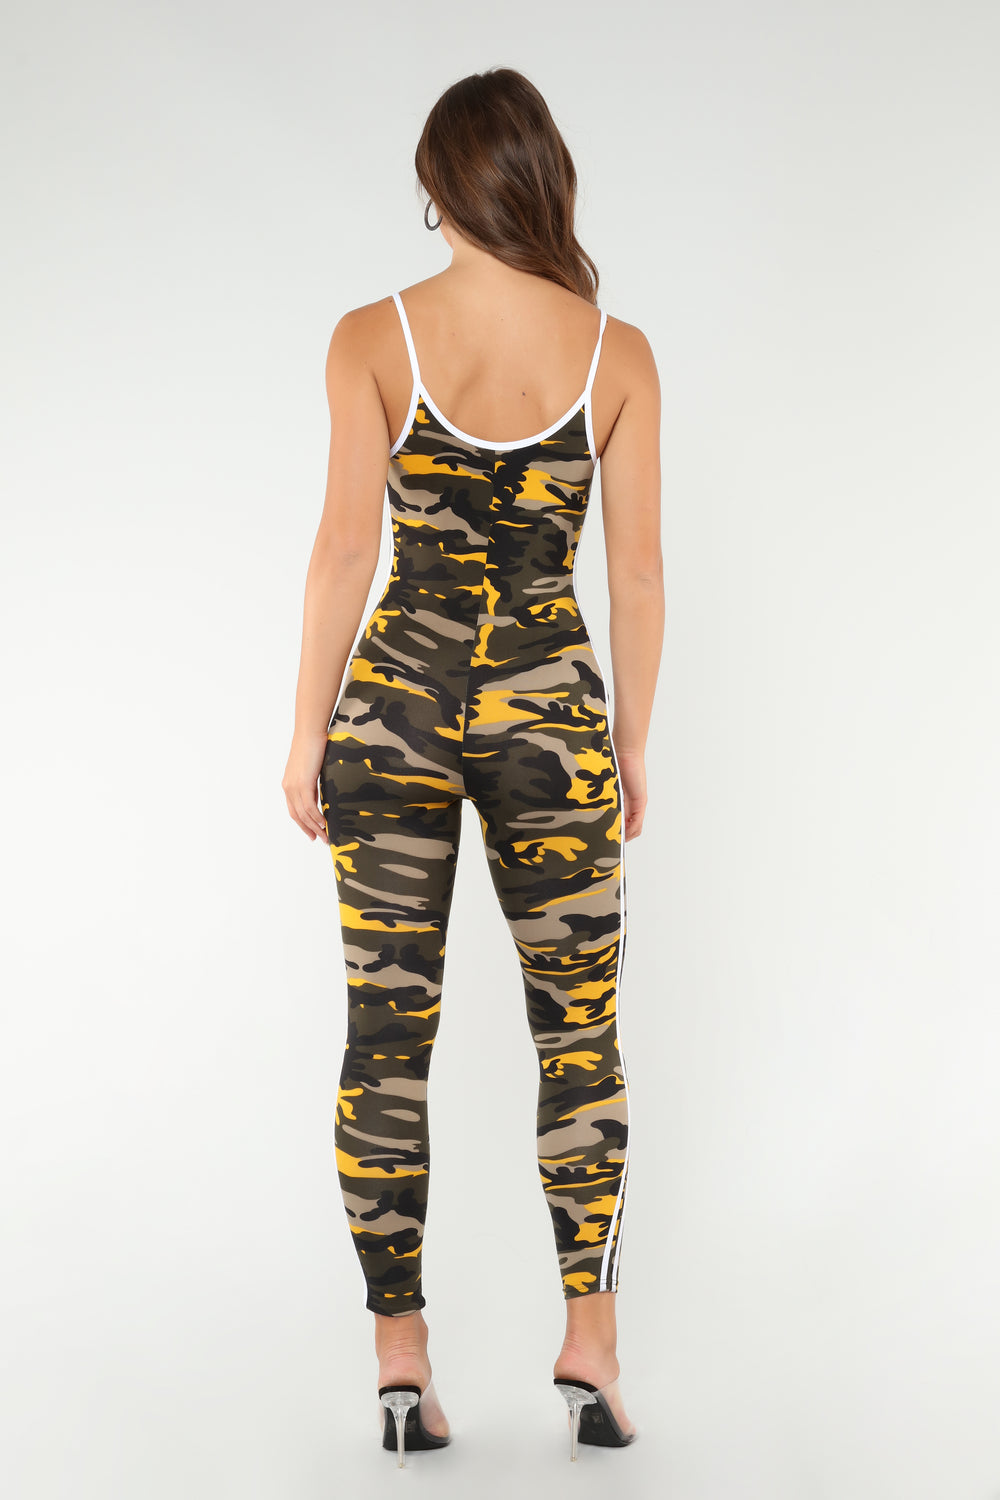 Camo Baby Lounge Jumpsuit - Yellow